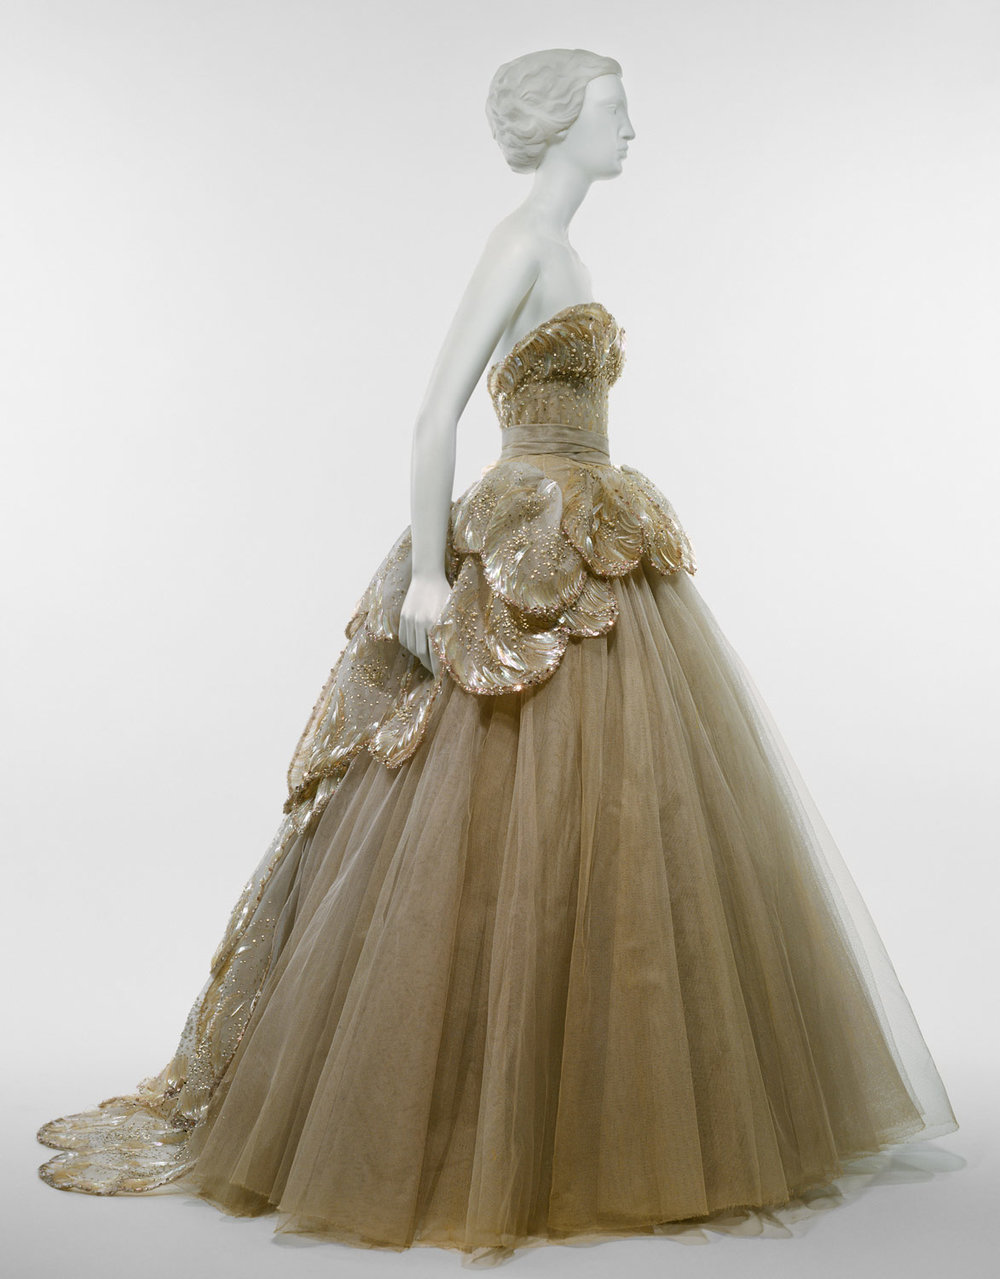 """Venus"" gown at the Metropolitan Museum of Art, Costume Institute     Design House:  House of Dior (French, founded 1947)    Designer:  Christian Dior (French, Granville 1905–1957 Montecatini)    Date:  fall/winter 1949–50   Culture:  French   Medium:  silk, sequins, rhinestones, simulated pearls   Credit Line:  Gift of Mrs. Byron C. Foy, 1953   Accession Number: C.I.53.40.7a–e"